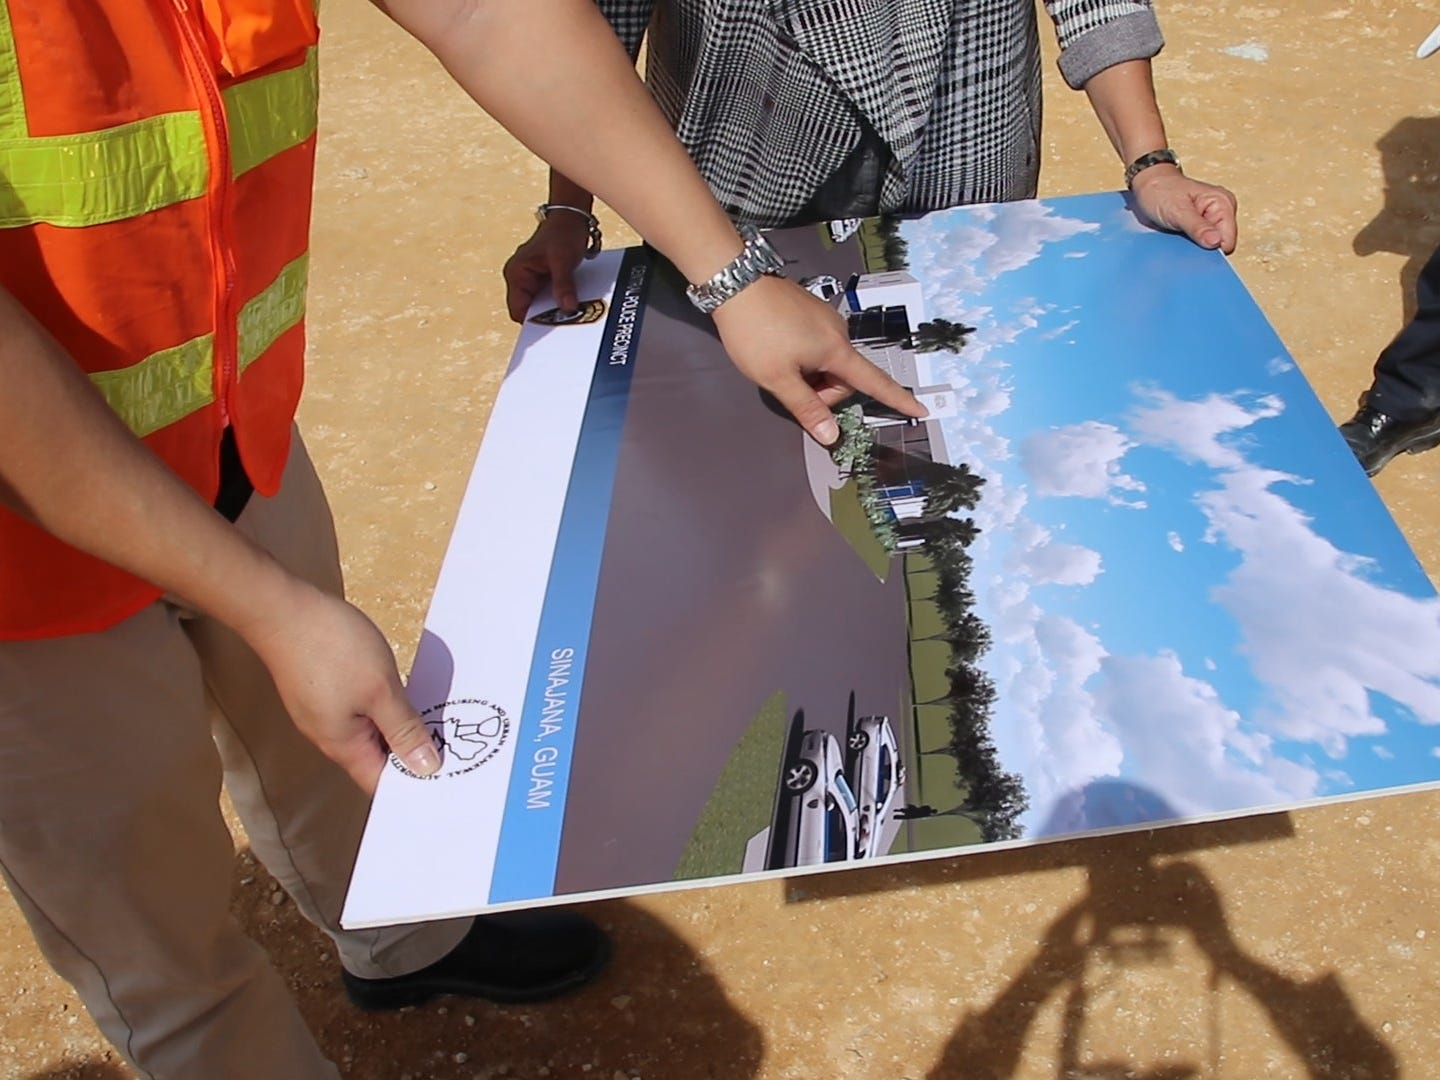 GovGuam workers examine a rendering of the new central police precinct in Sinajana on Wednesday Feb. 6, 2019. The precinct slated to be completely constructed in late March.